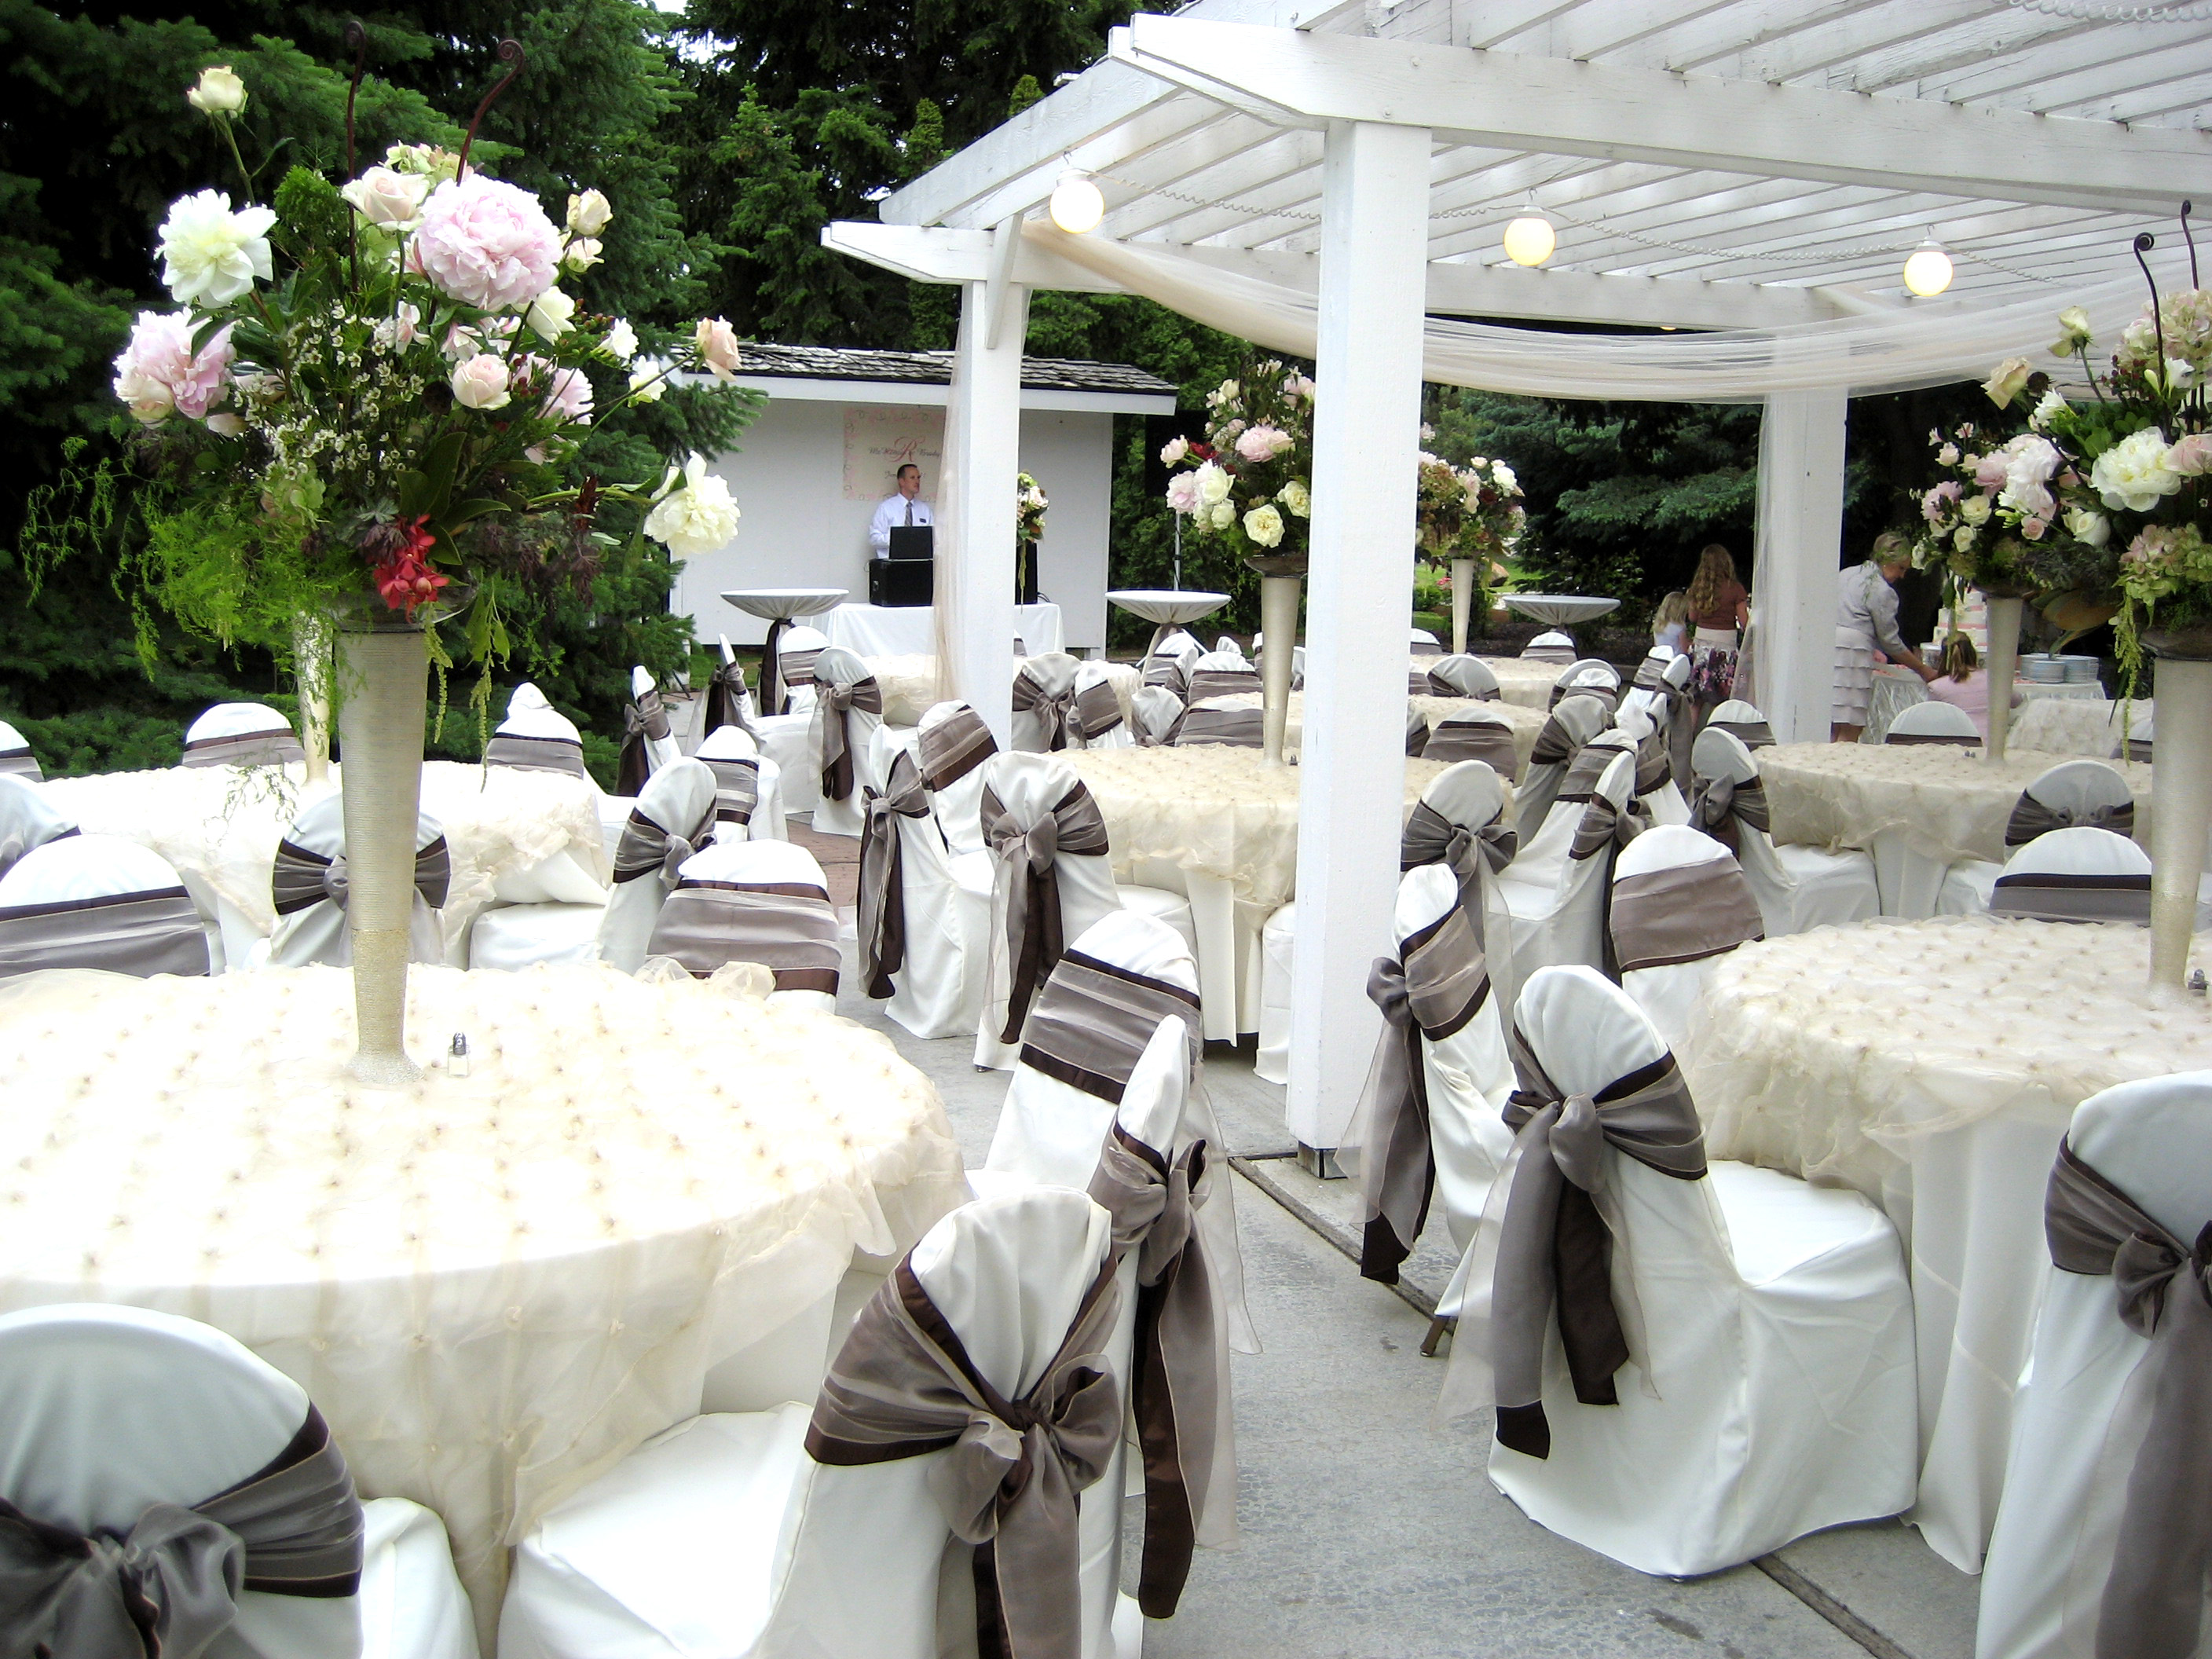 chair cover rentals birmingham al ergonomic furniture uk covers for wedding weddings at eagle hills golf